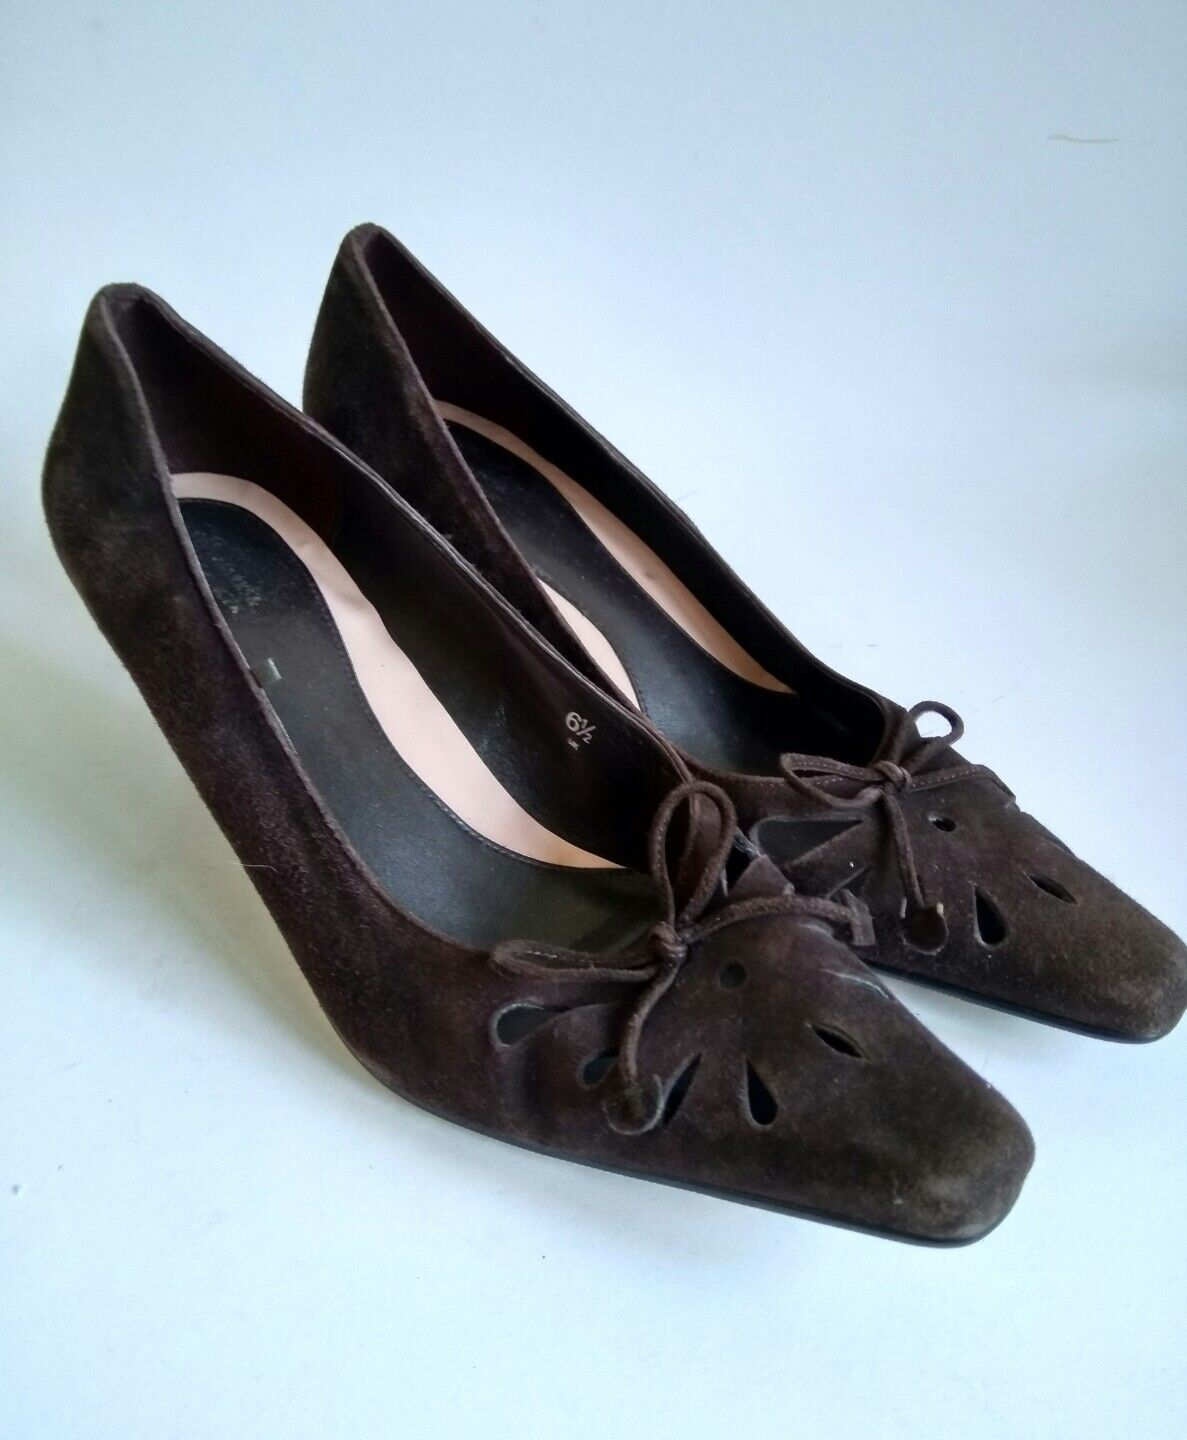 MARKS & SPENCER INSOLIA WOMENS BROWN SUEDE COURT HEELS SHOES SIZE UK 6.5 EUR 40